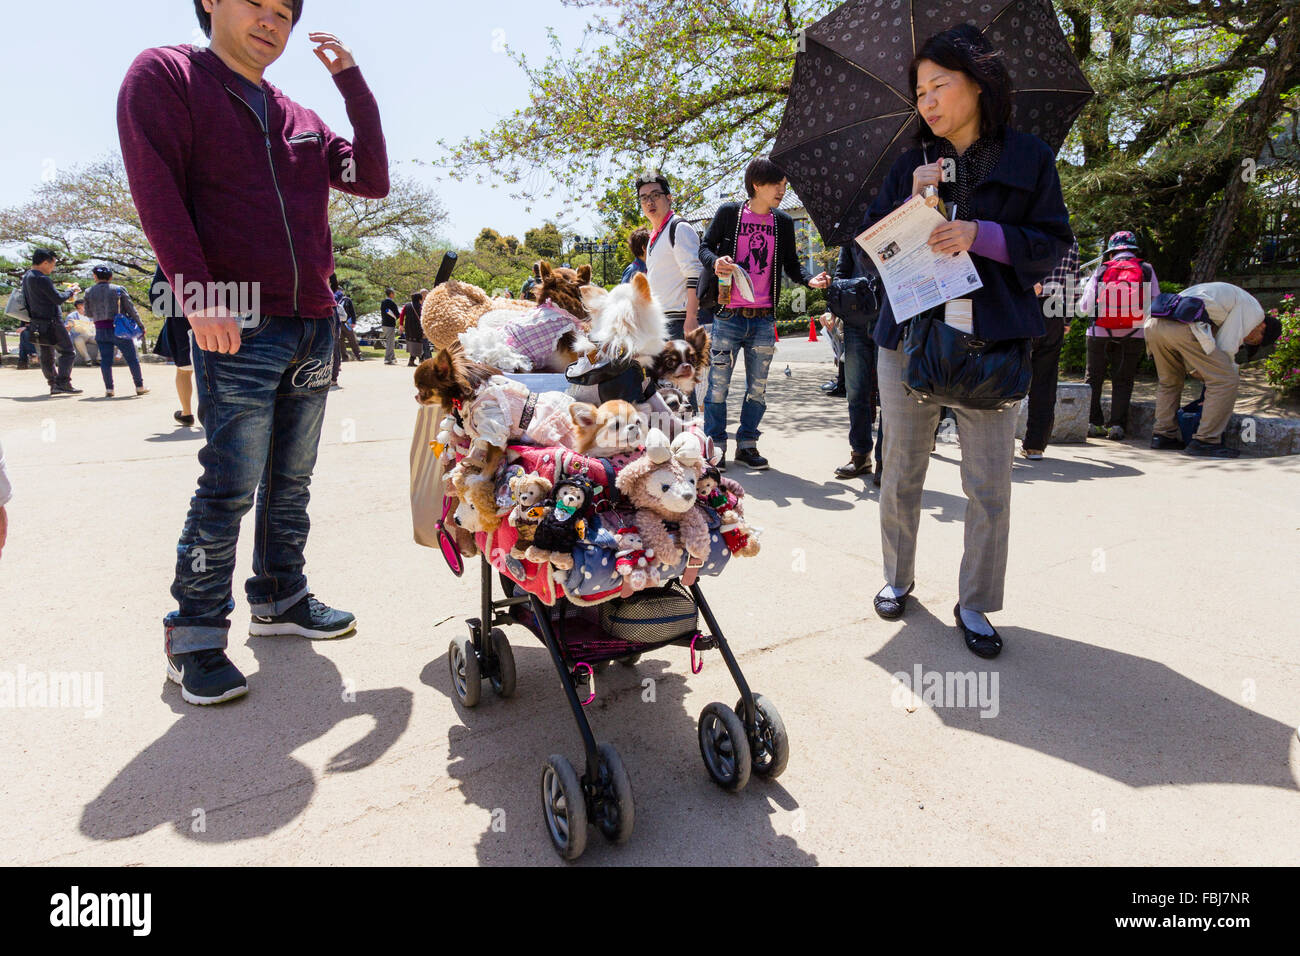 People gathered around pushchair filled with several 'pampered pet' dogs. A Japanese craze where dogs are - Stock Image